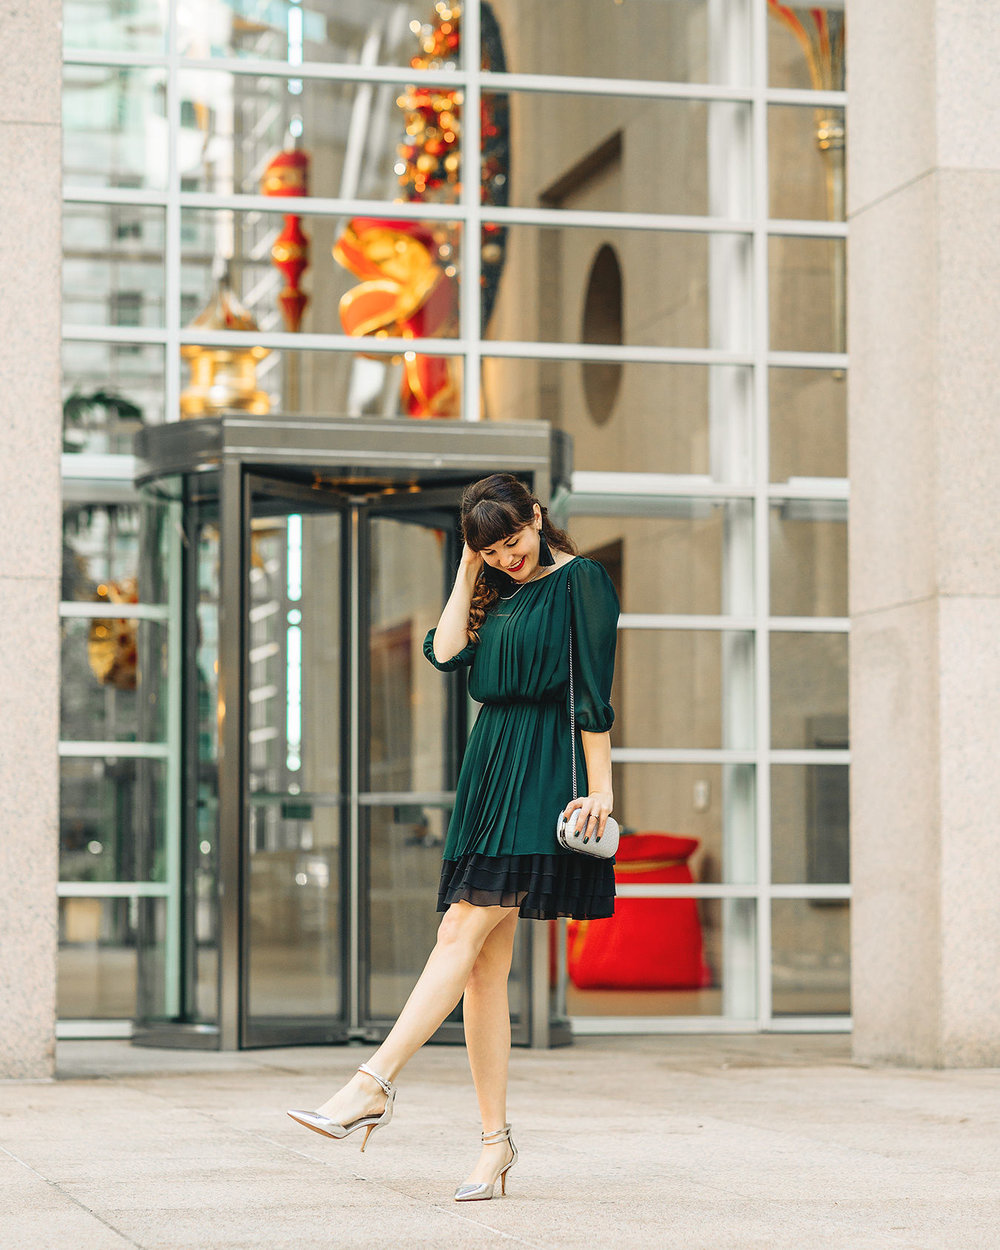 Sahra - SF Style Blogger Sharing Thrifted Holiday Outfits